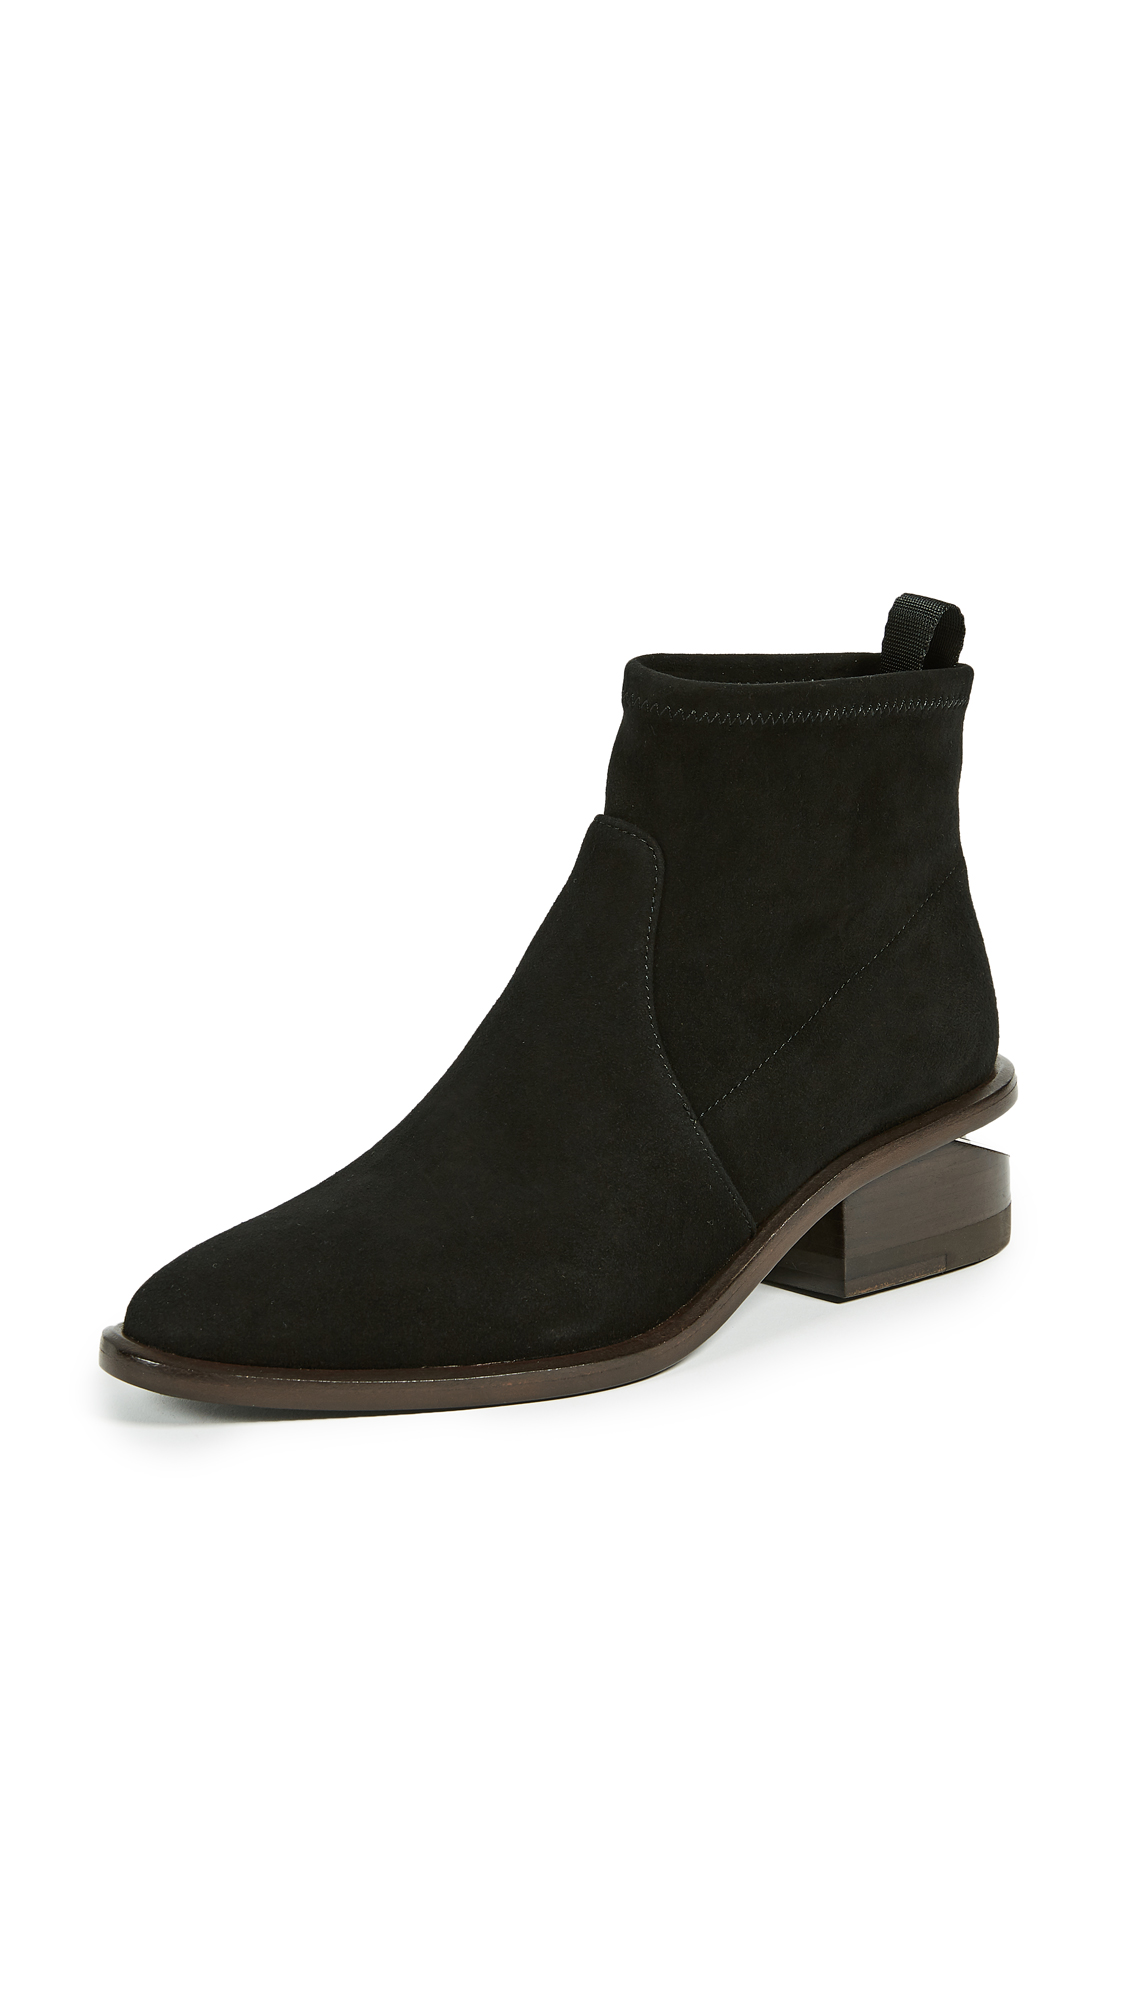 Alexander Wang Kori Stretch Booties - Black